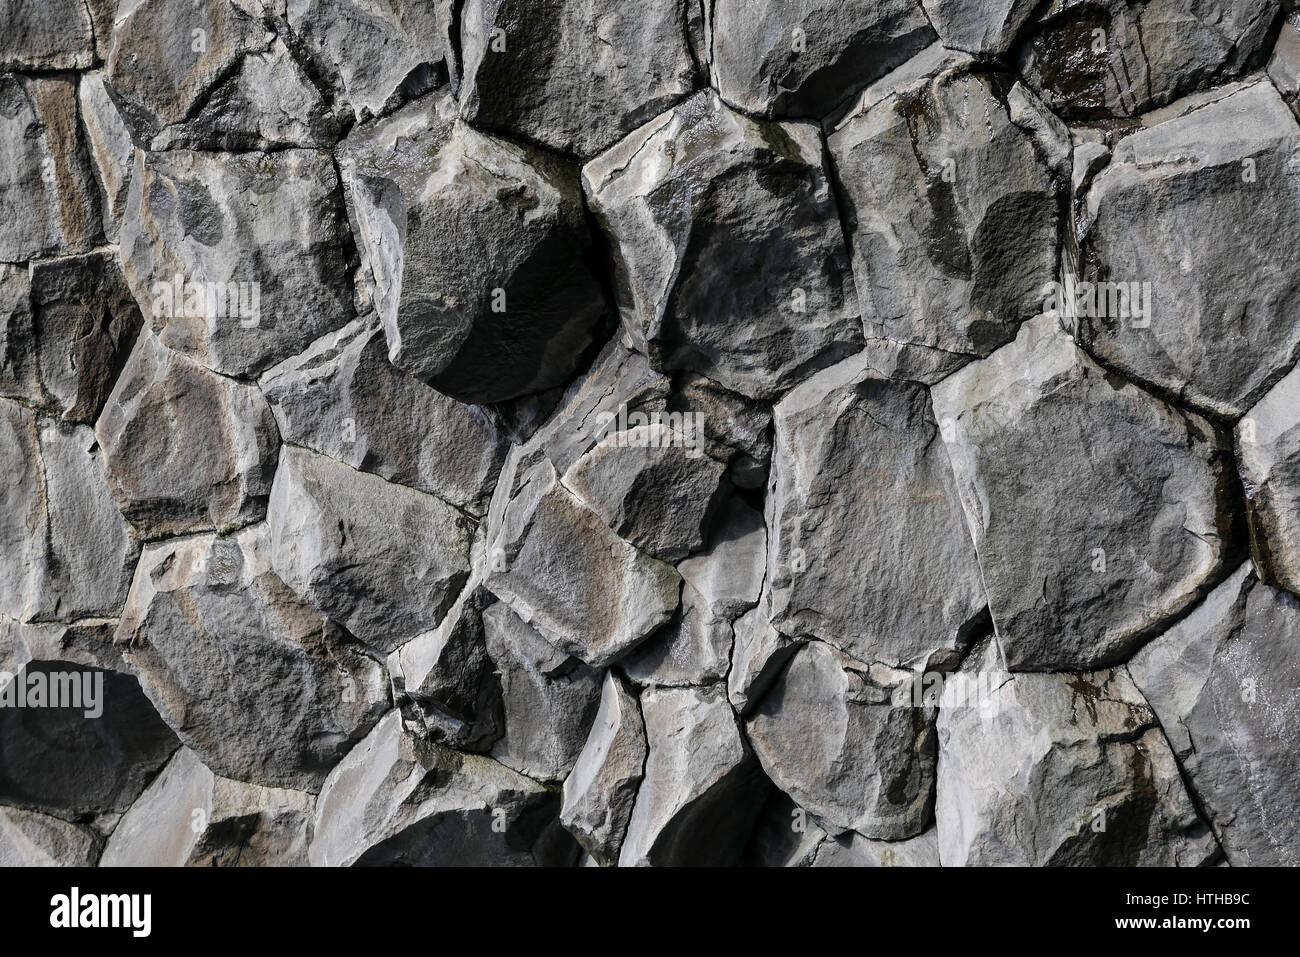 Volcanic hexagonal basalt rock formation for natural abstract background pattern, Reynisfjara, Iceland - Stock Image